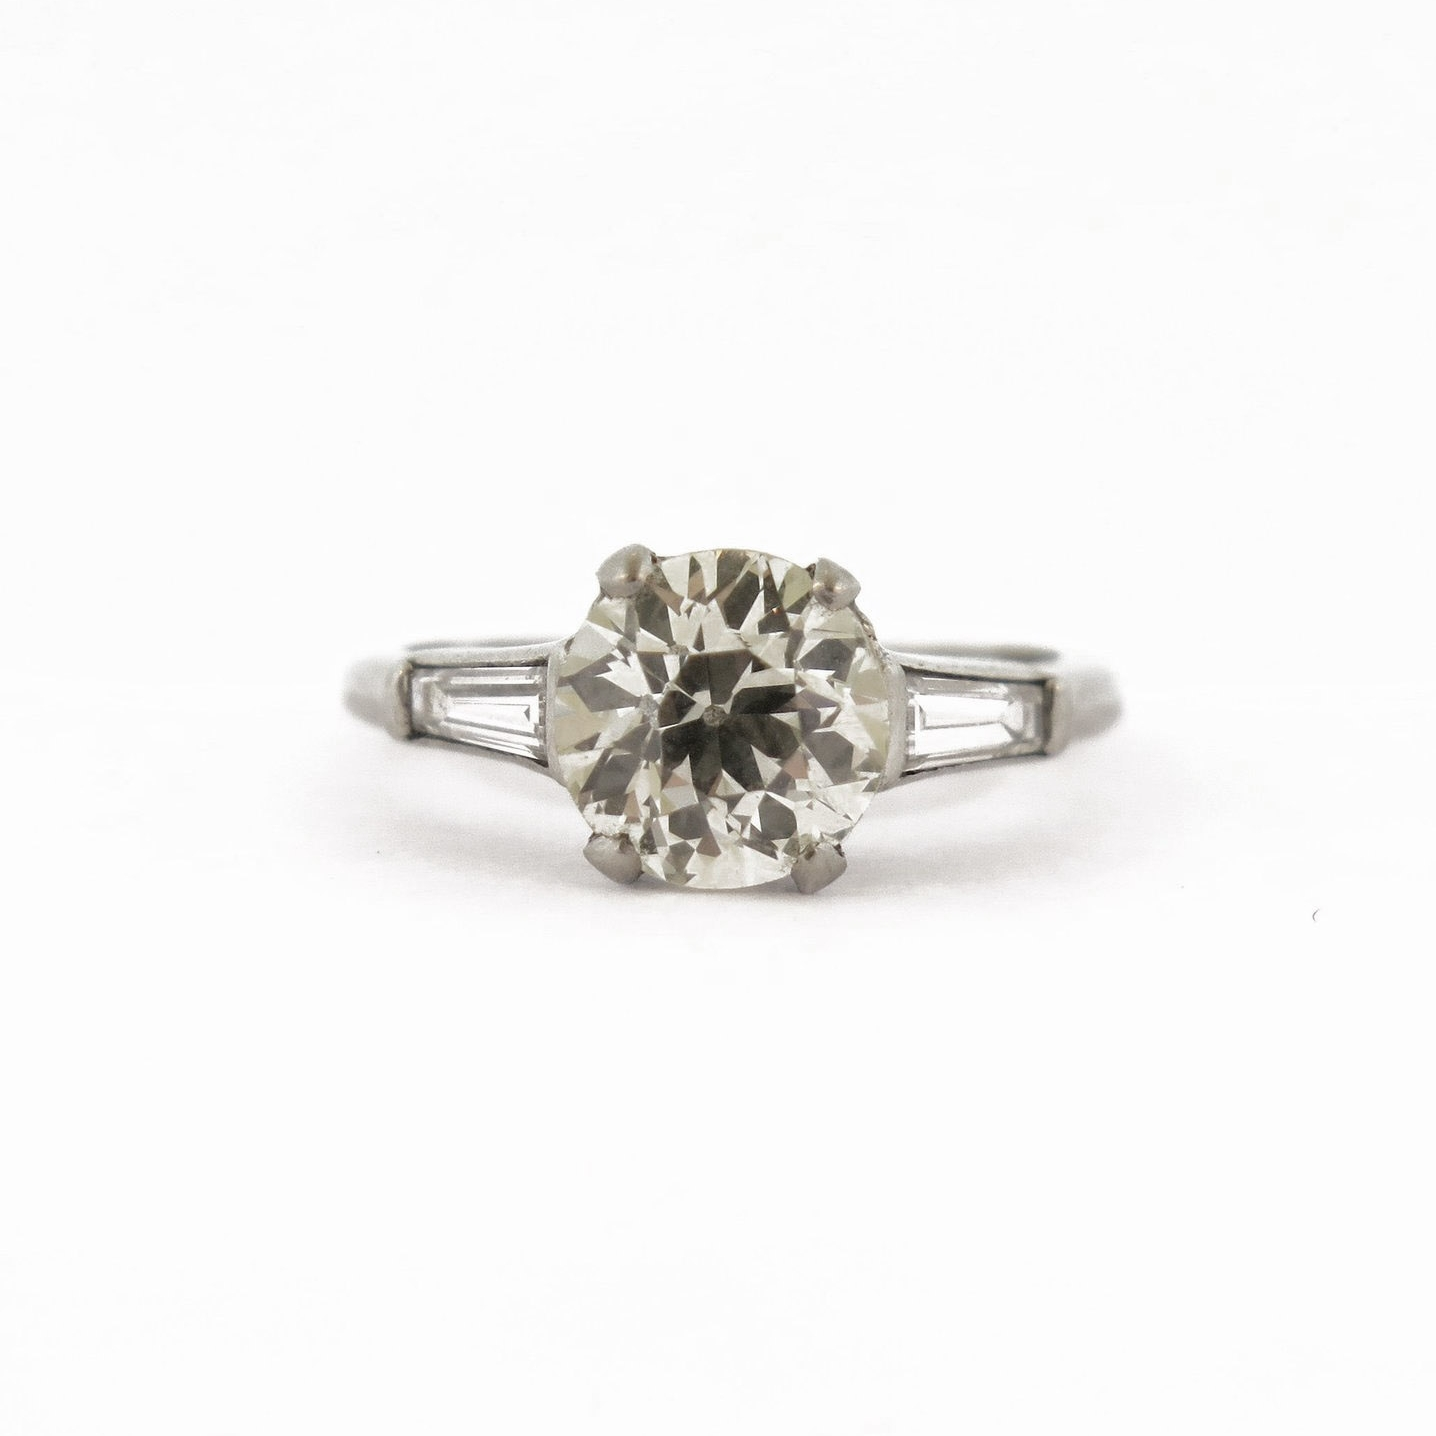 1.5 ct Diamond with Baguette Accents